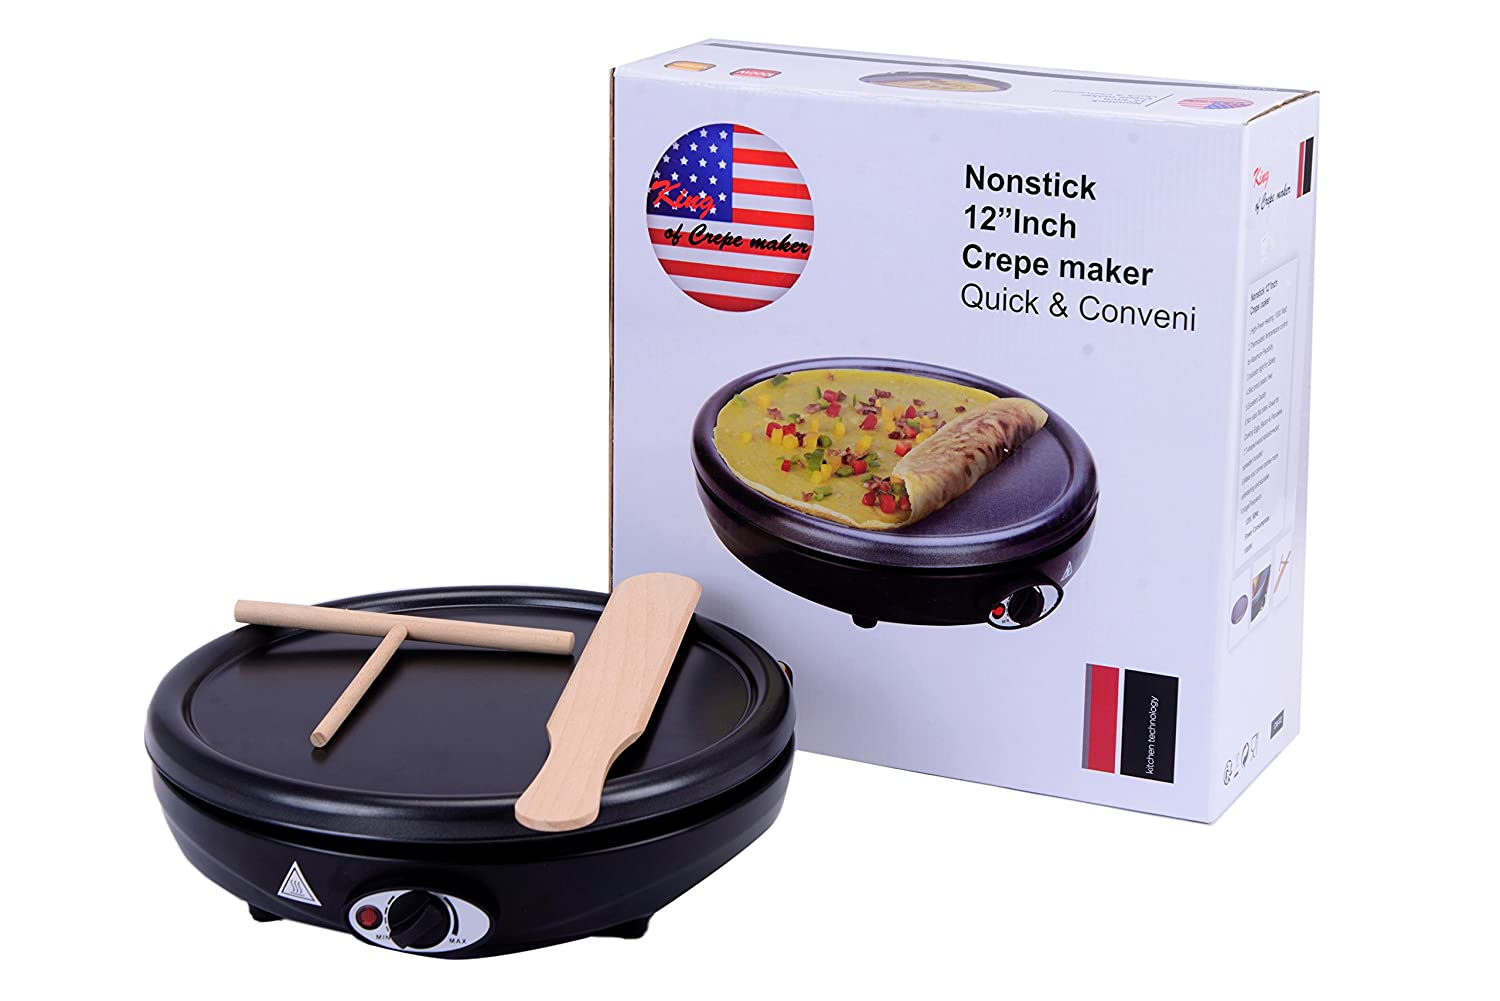 Electric Crepe Maker Griddle, 12 inch Nonstick easy to clean, Use also for Cooking Eggs, bacon and other breakfast favorites King of Raclette